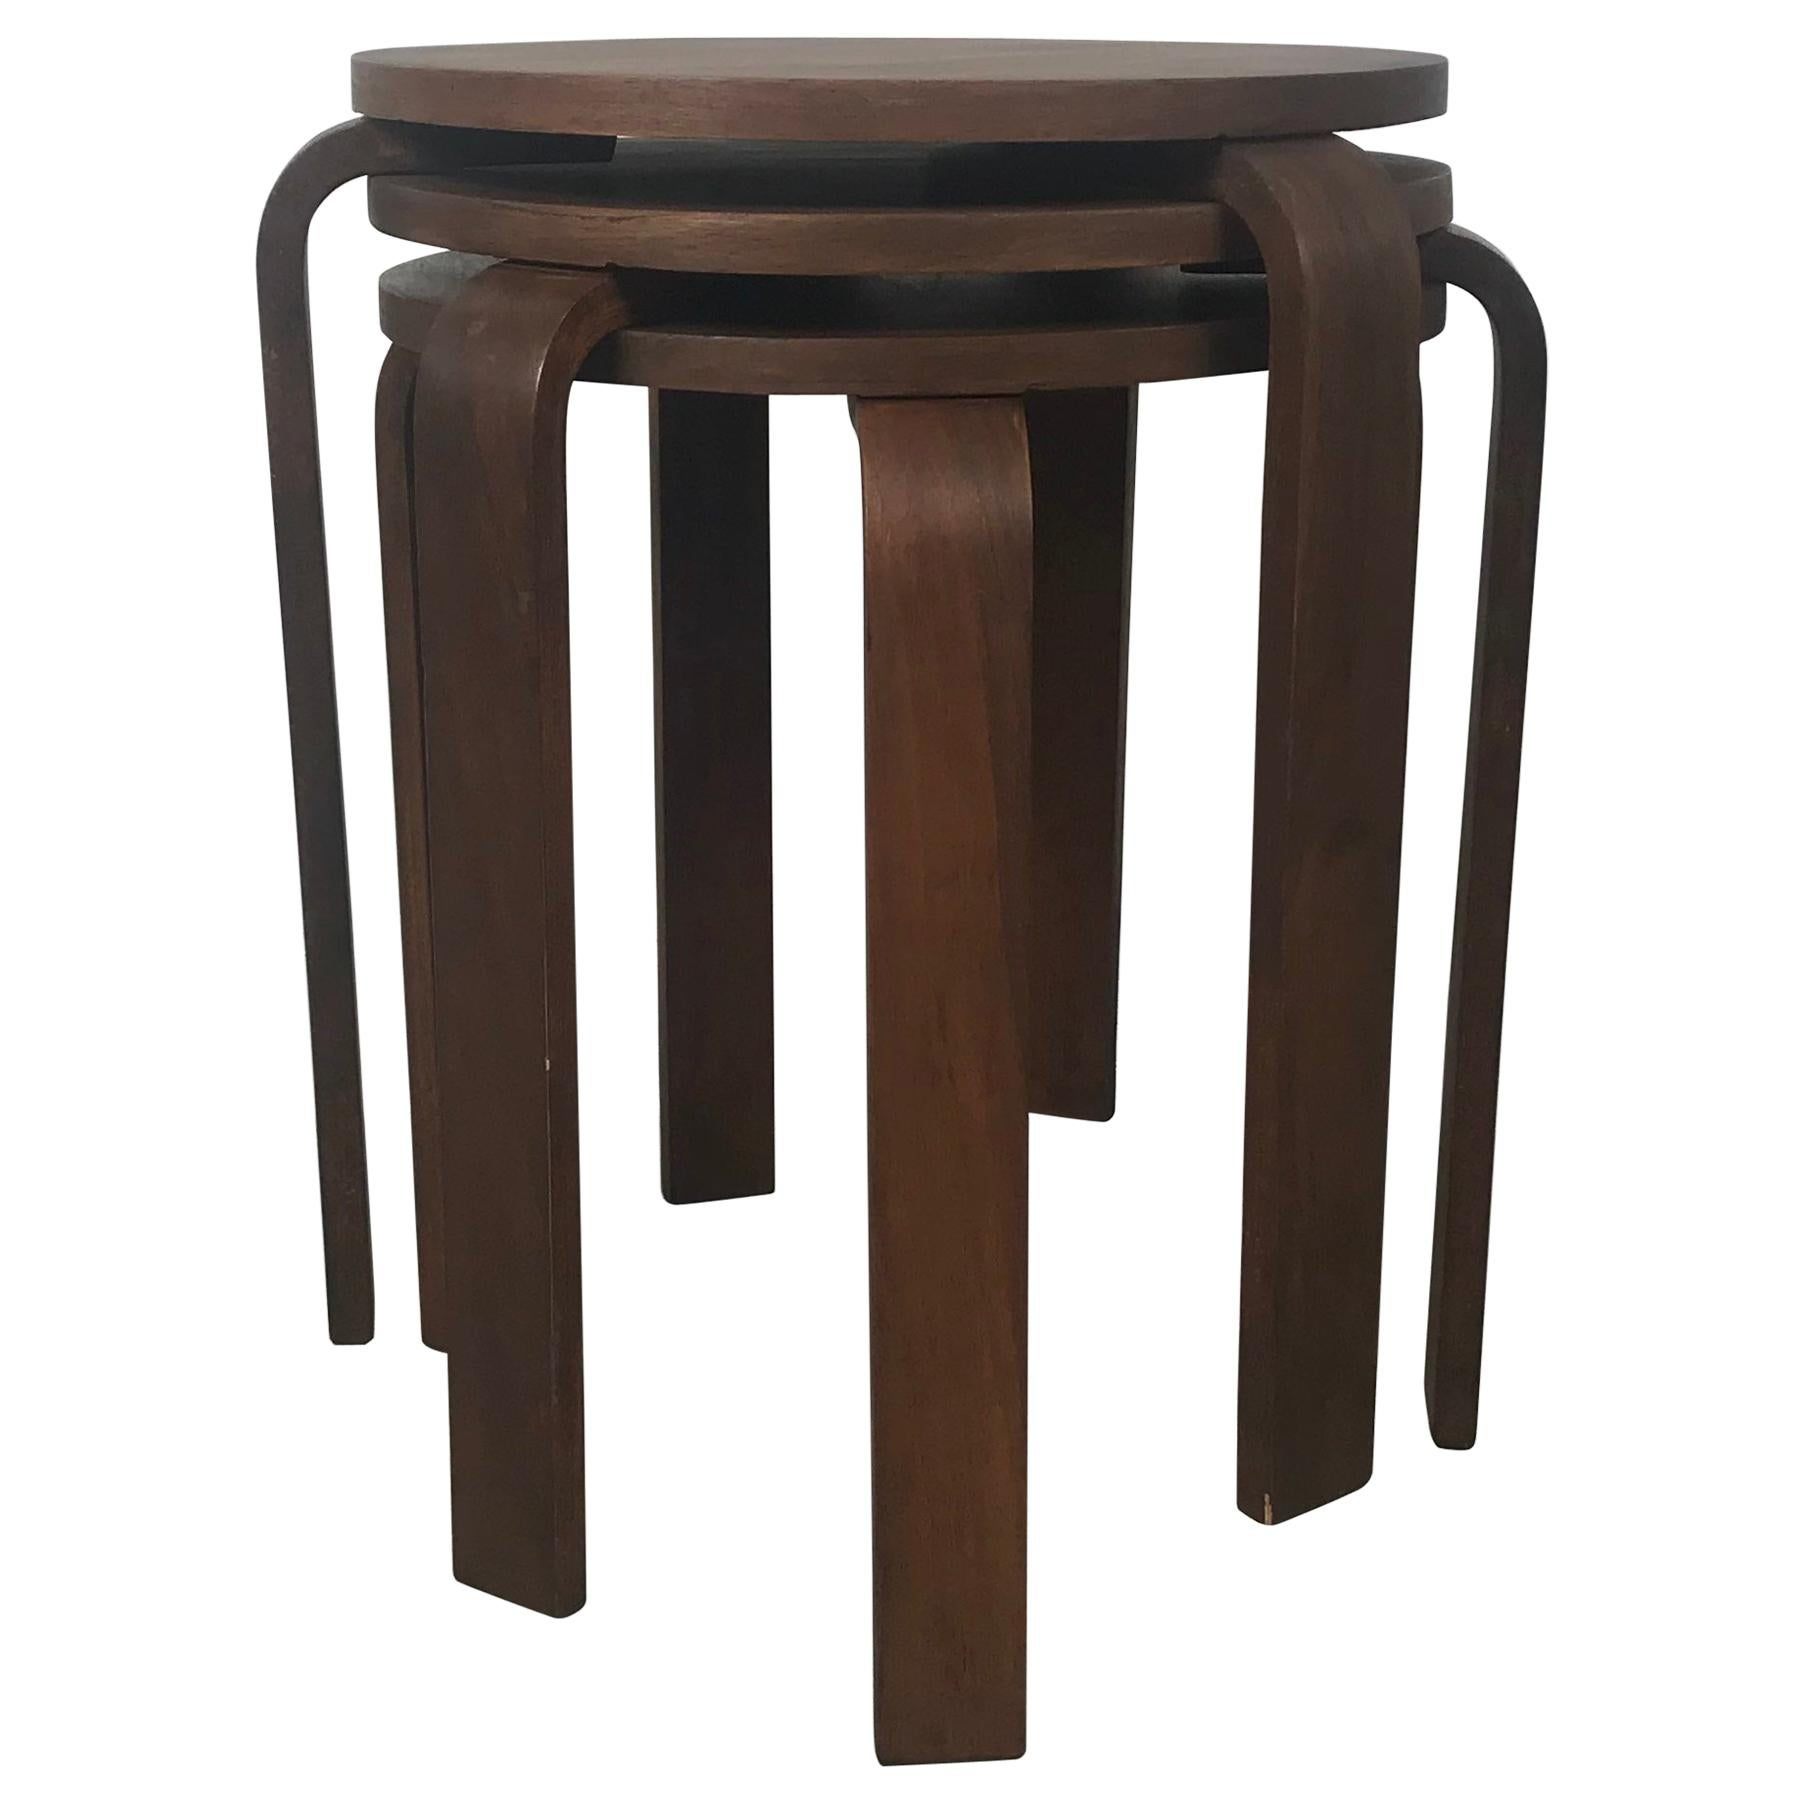 Classic Set of 3 Walnut Stacking Stools Manufactured by Thonet after Alvar Aalto